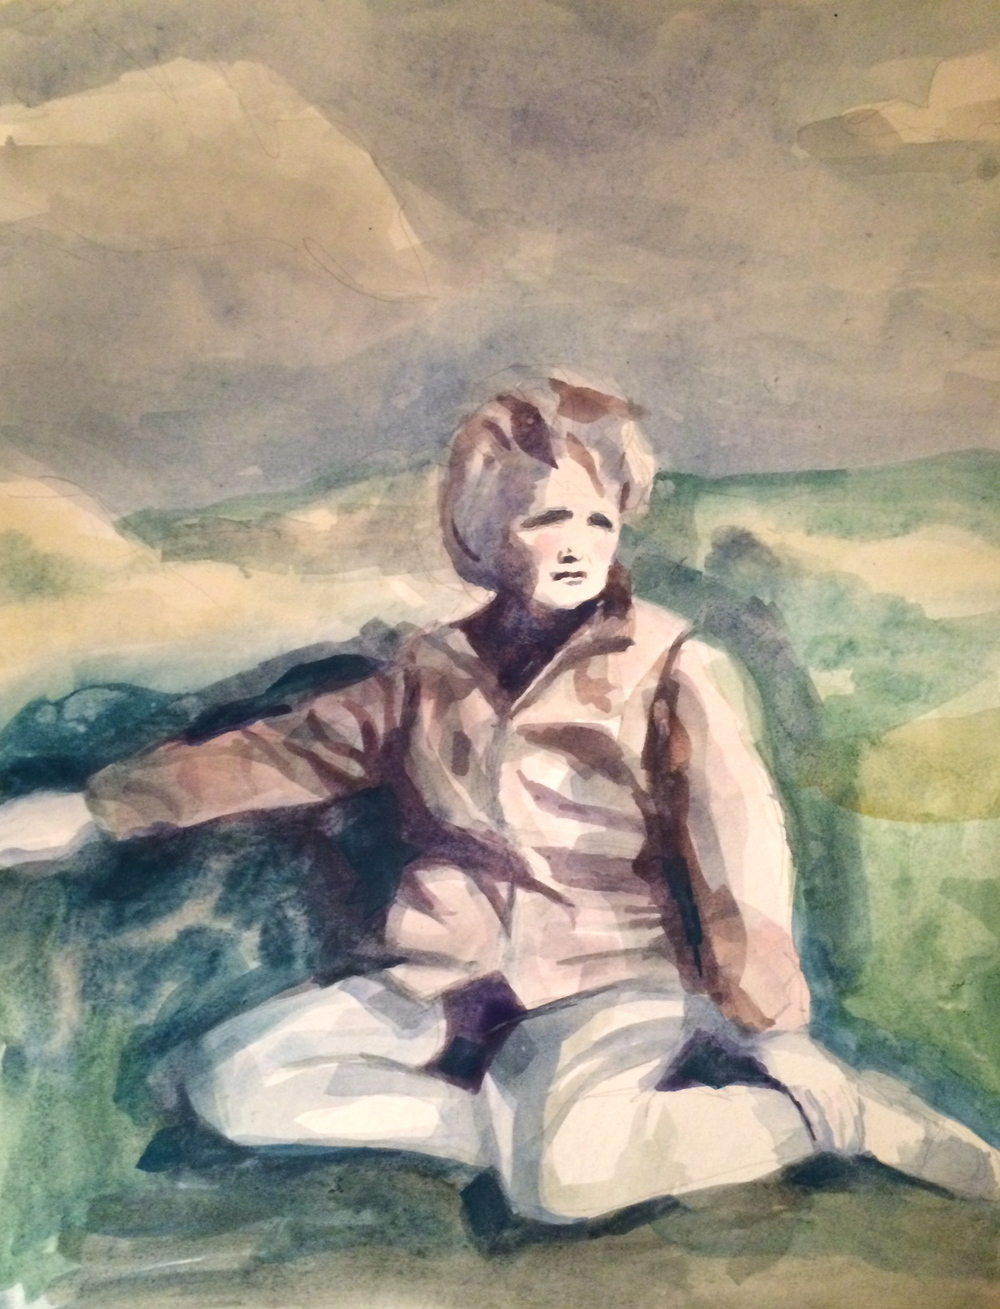 "DAPHNE DU MAURIER    watercolor on paper, 8 1/2 x 11"", 2015"